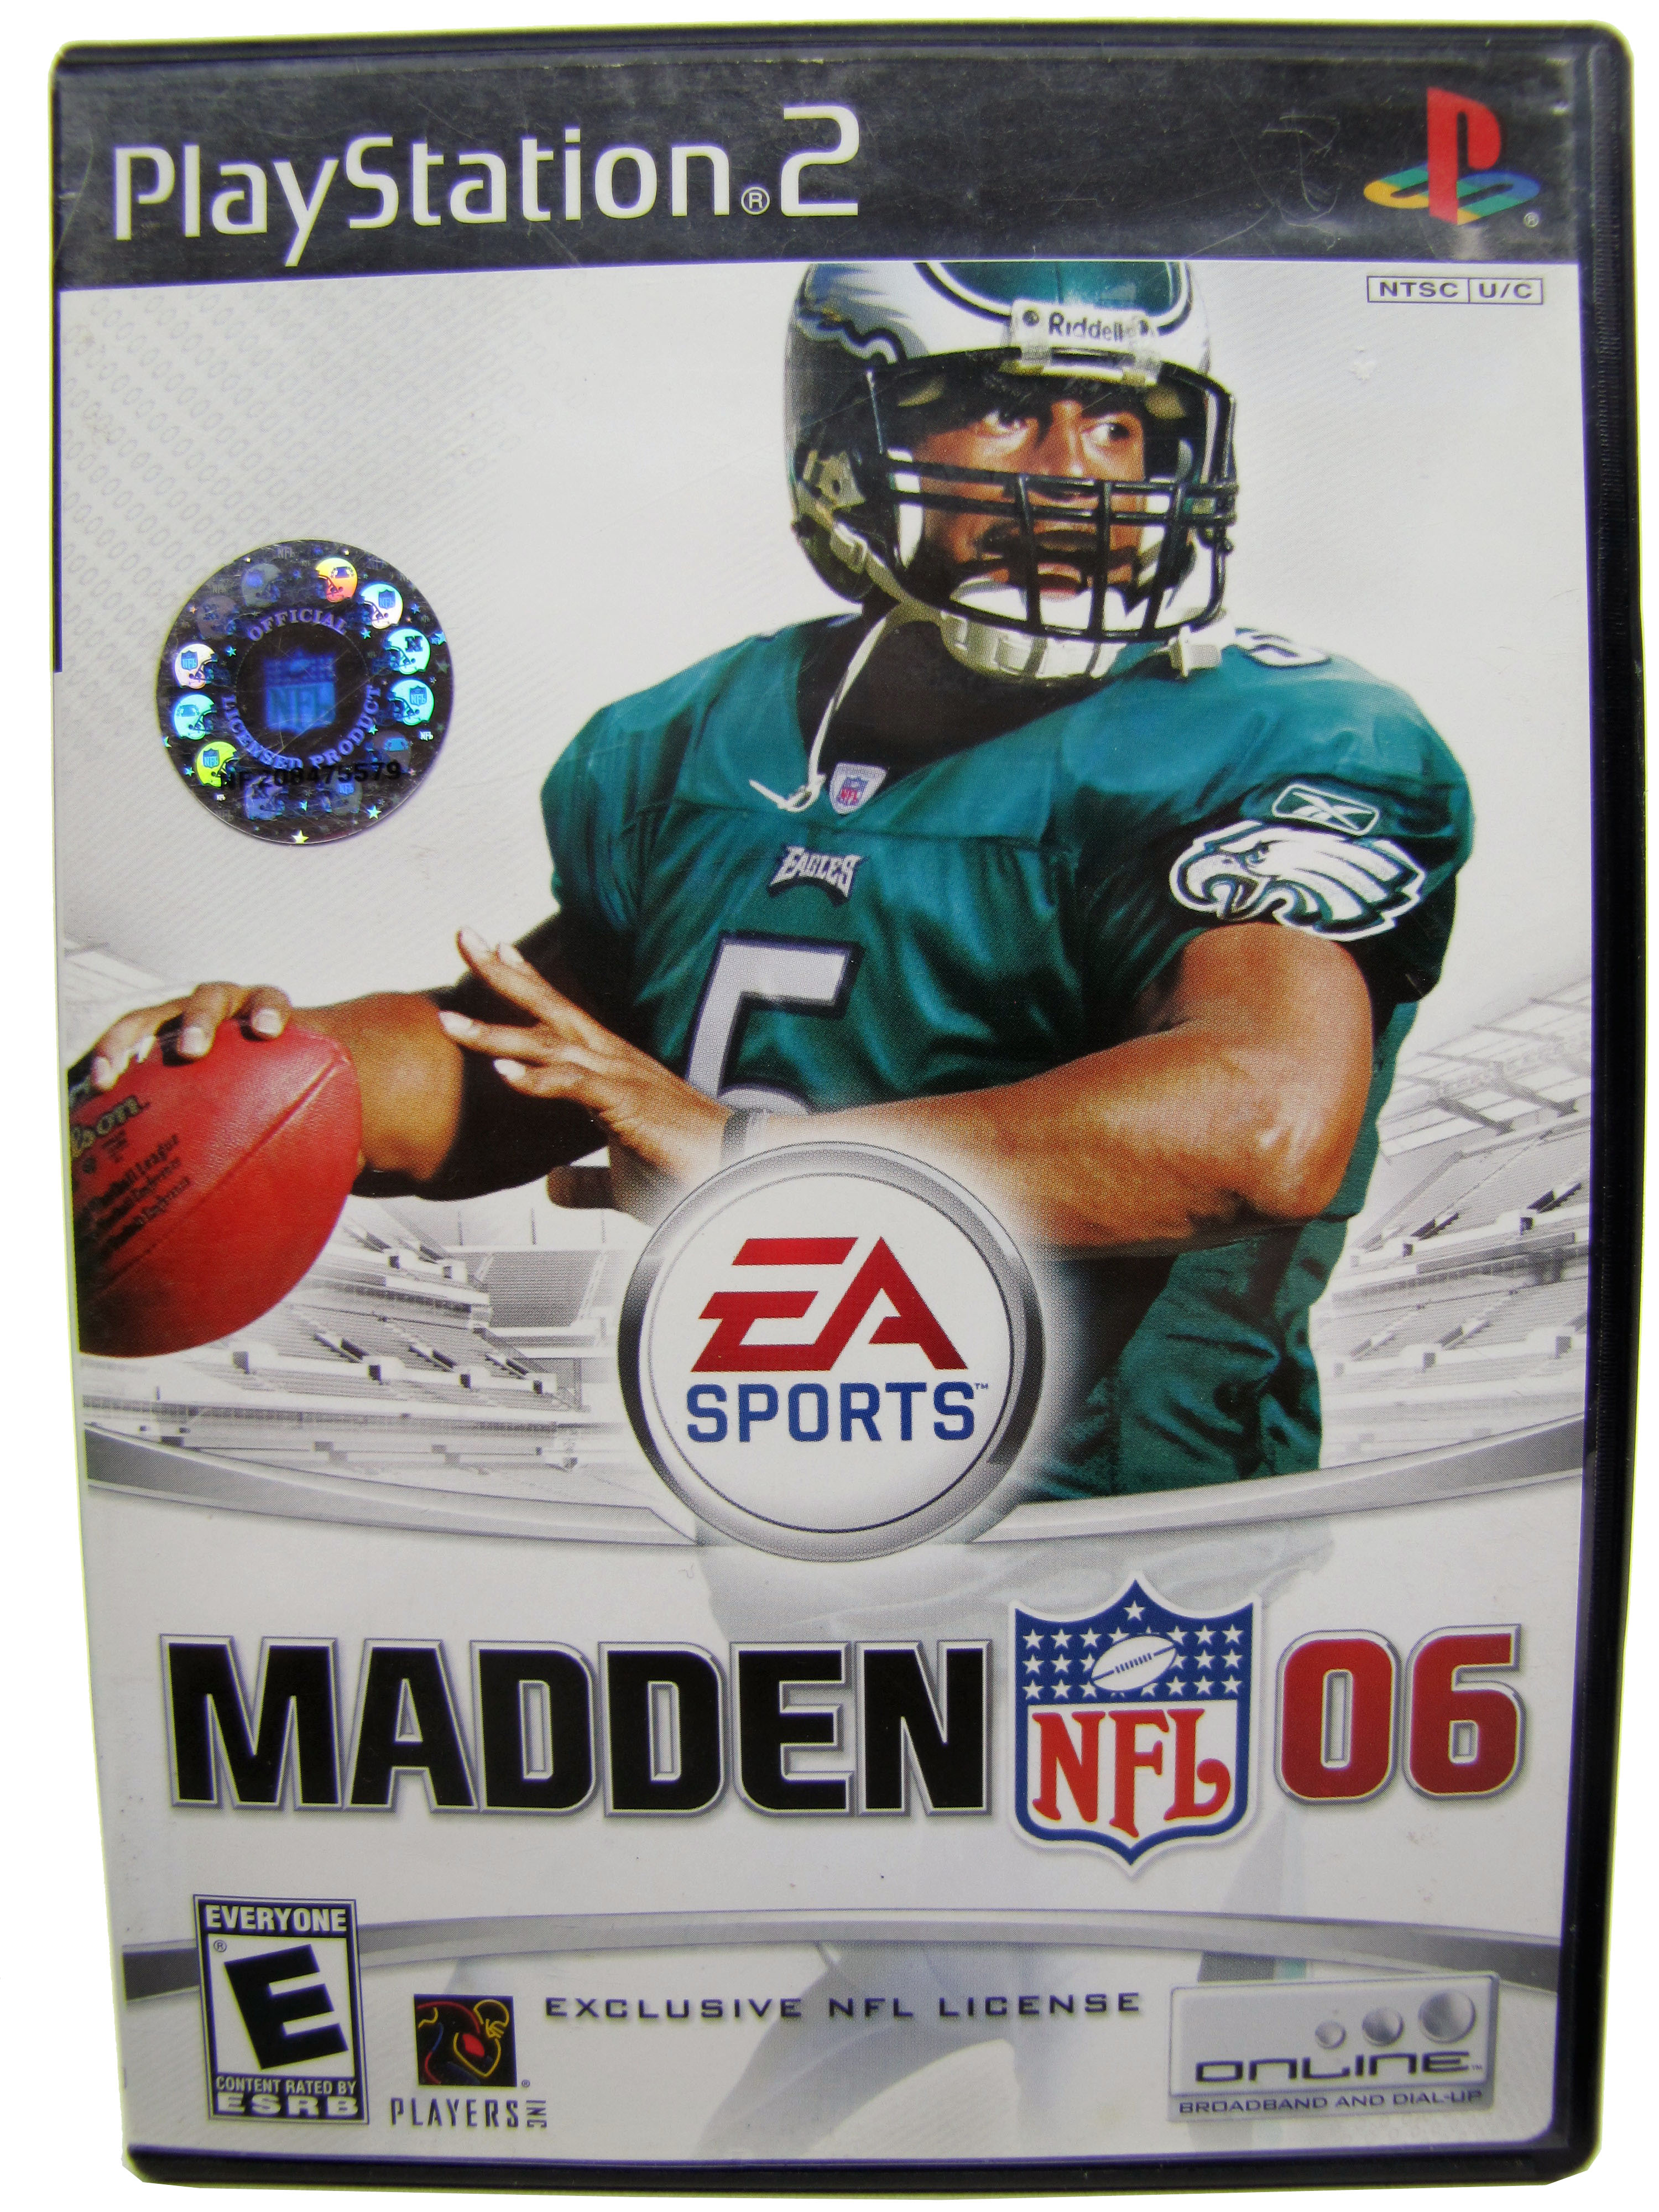 PS2 Madden NFL '06 Complete - 2002